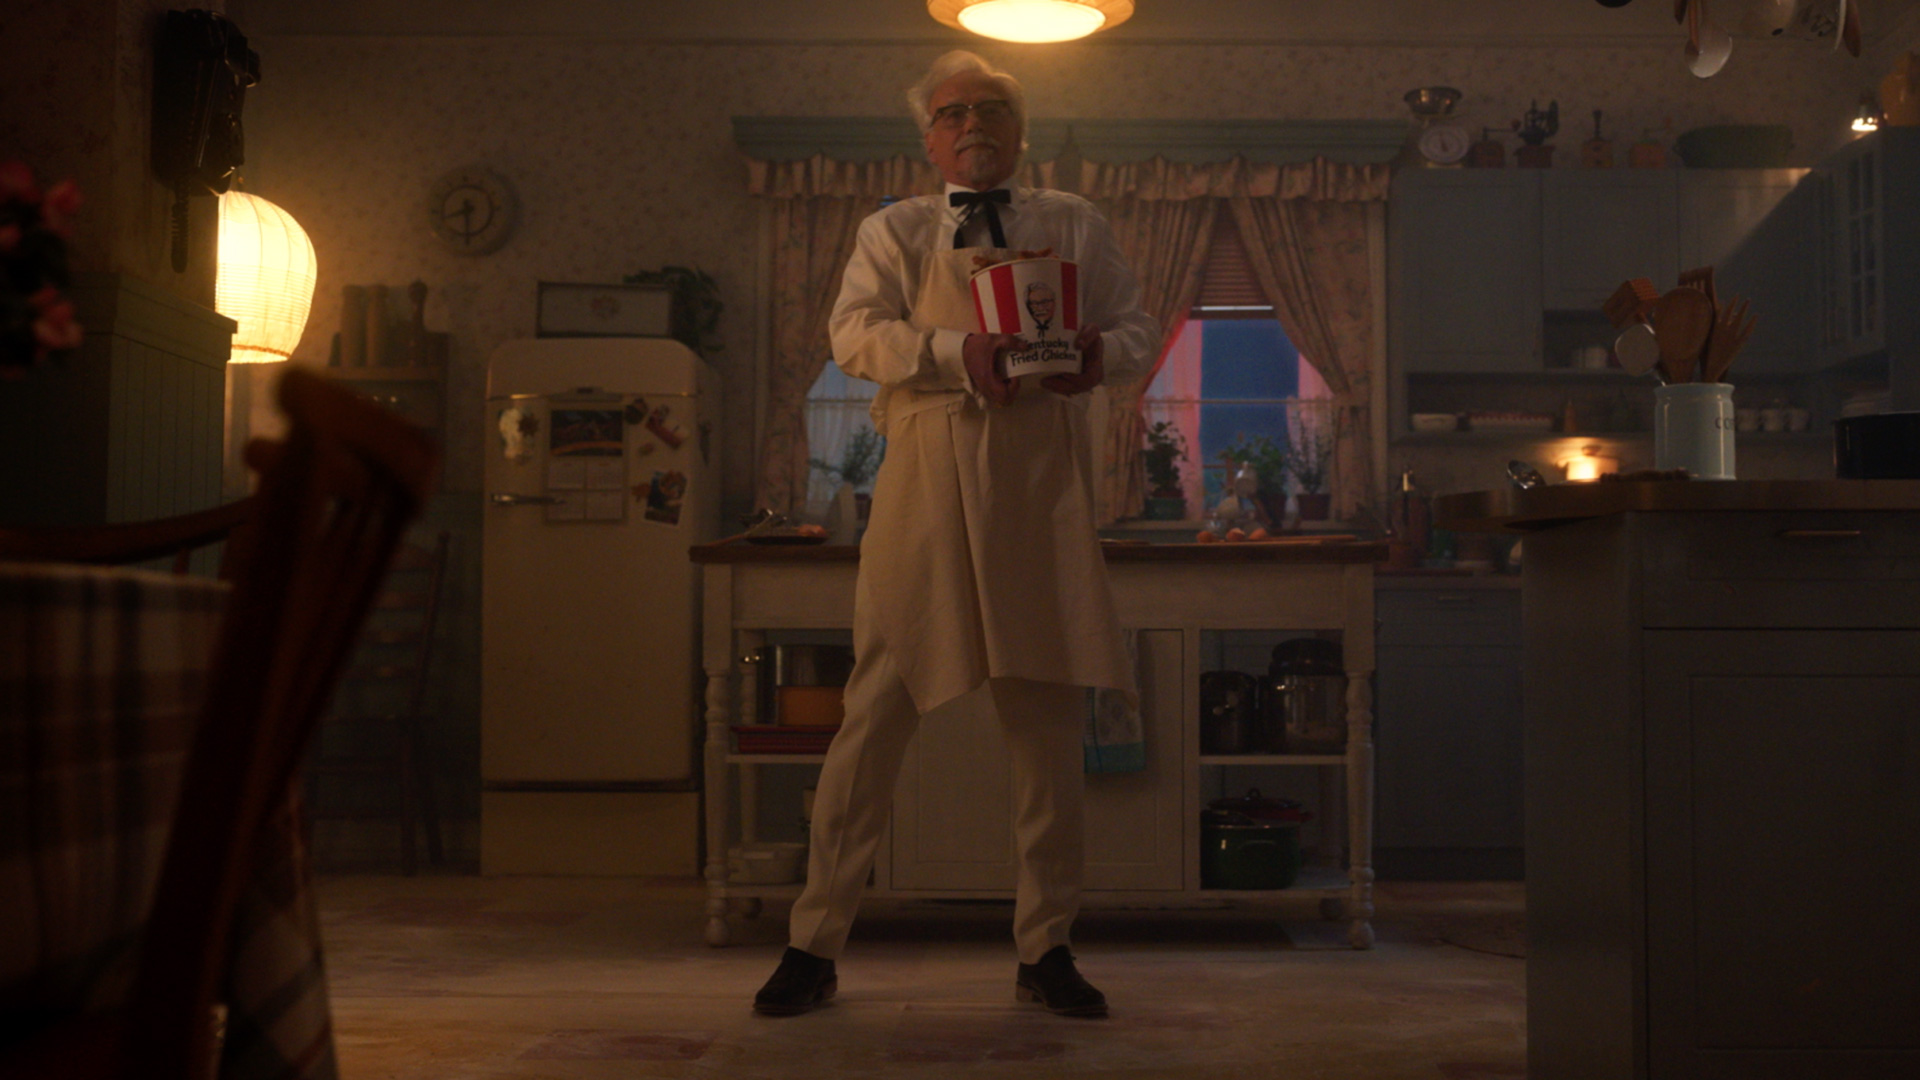 Colonel Sanders standing in a kitchen